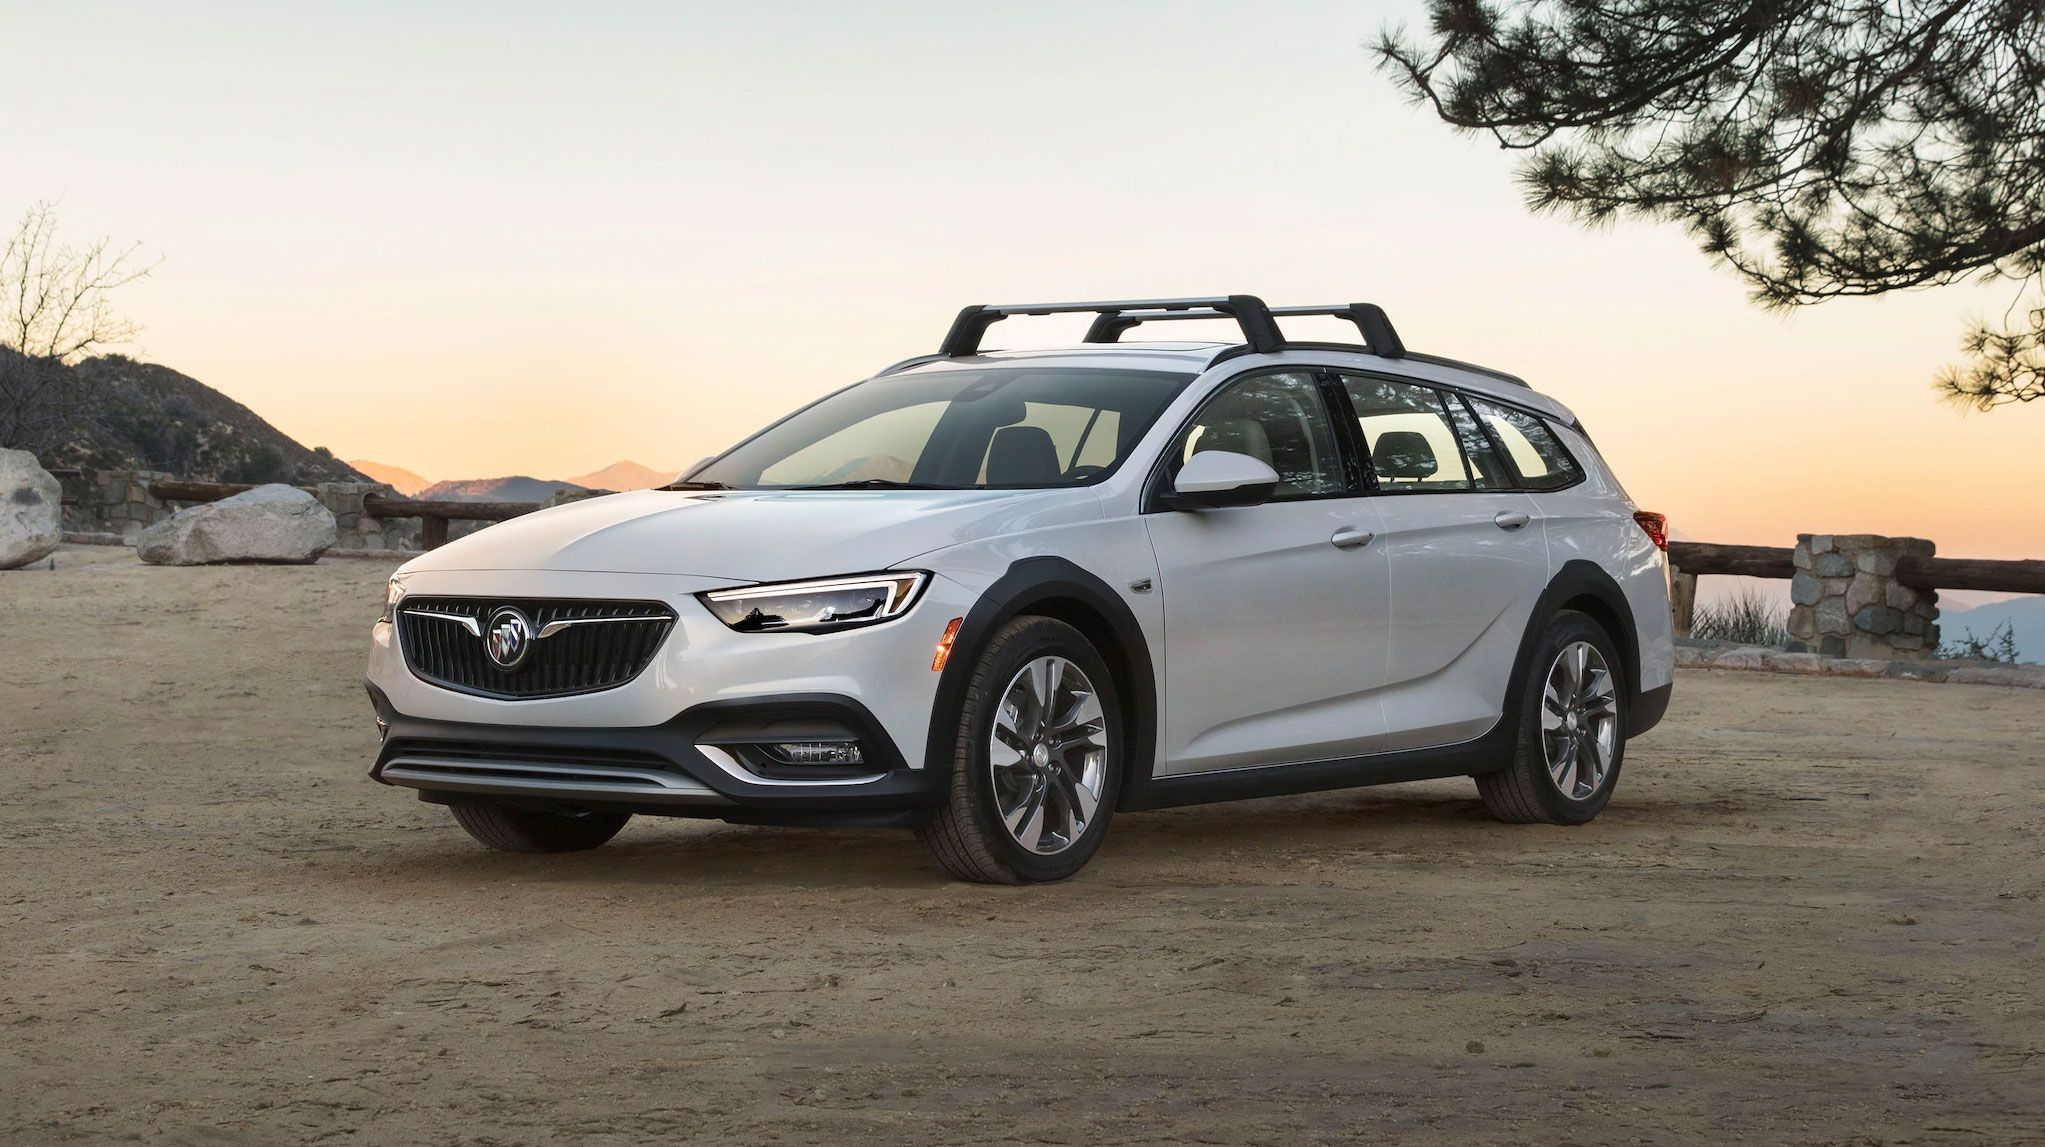 2020 Buick Regal Tourx Review, Pricing, And Specs New 2021 Buick Regal Tourx Interior, Brochure, Preferred